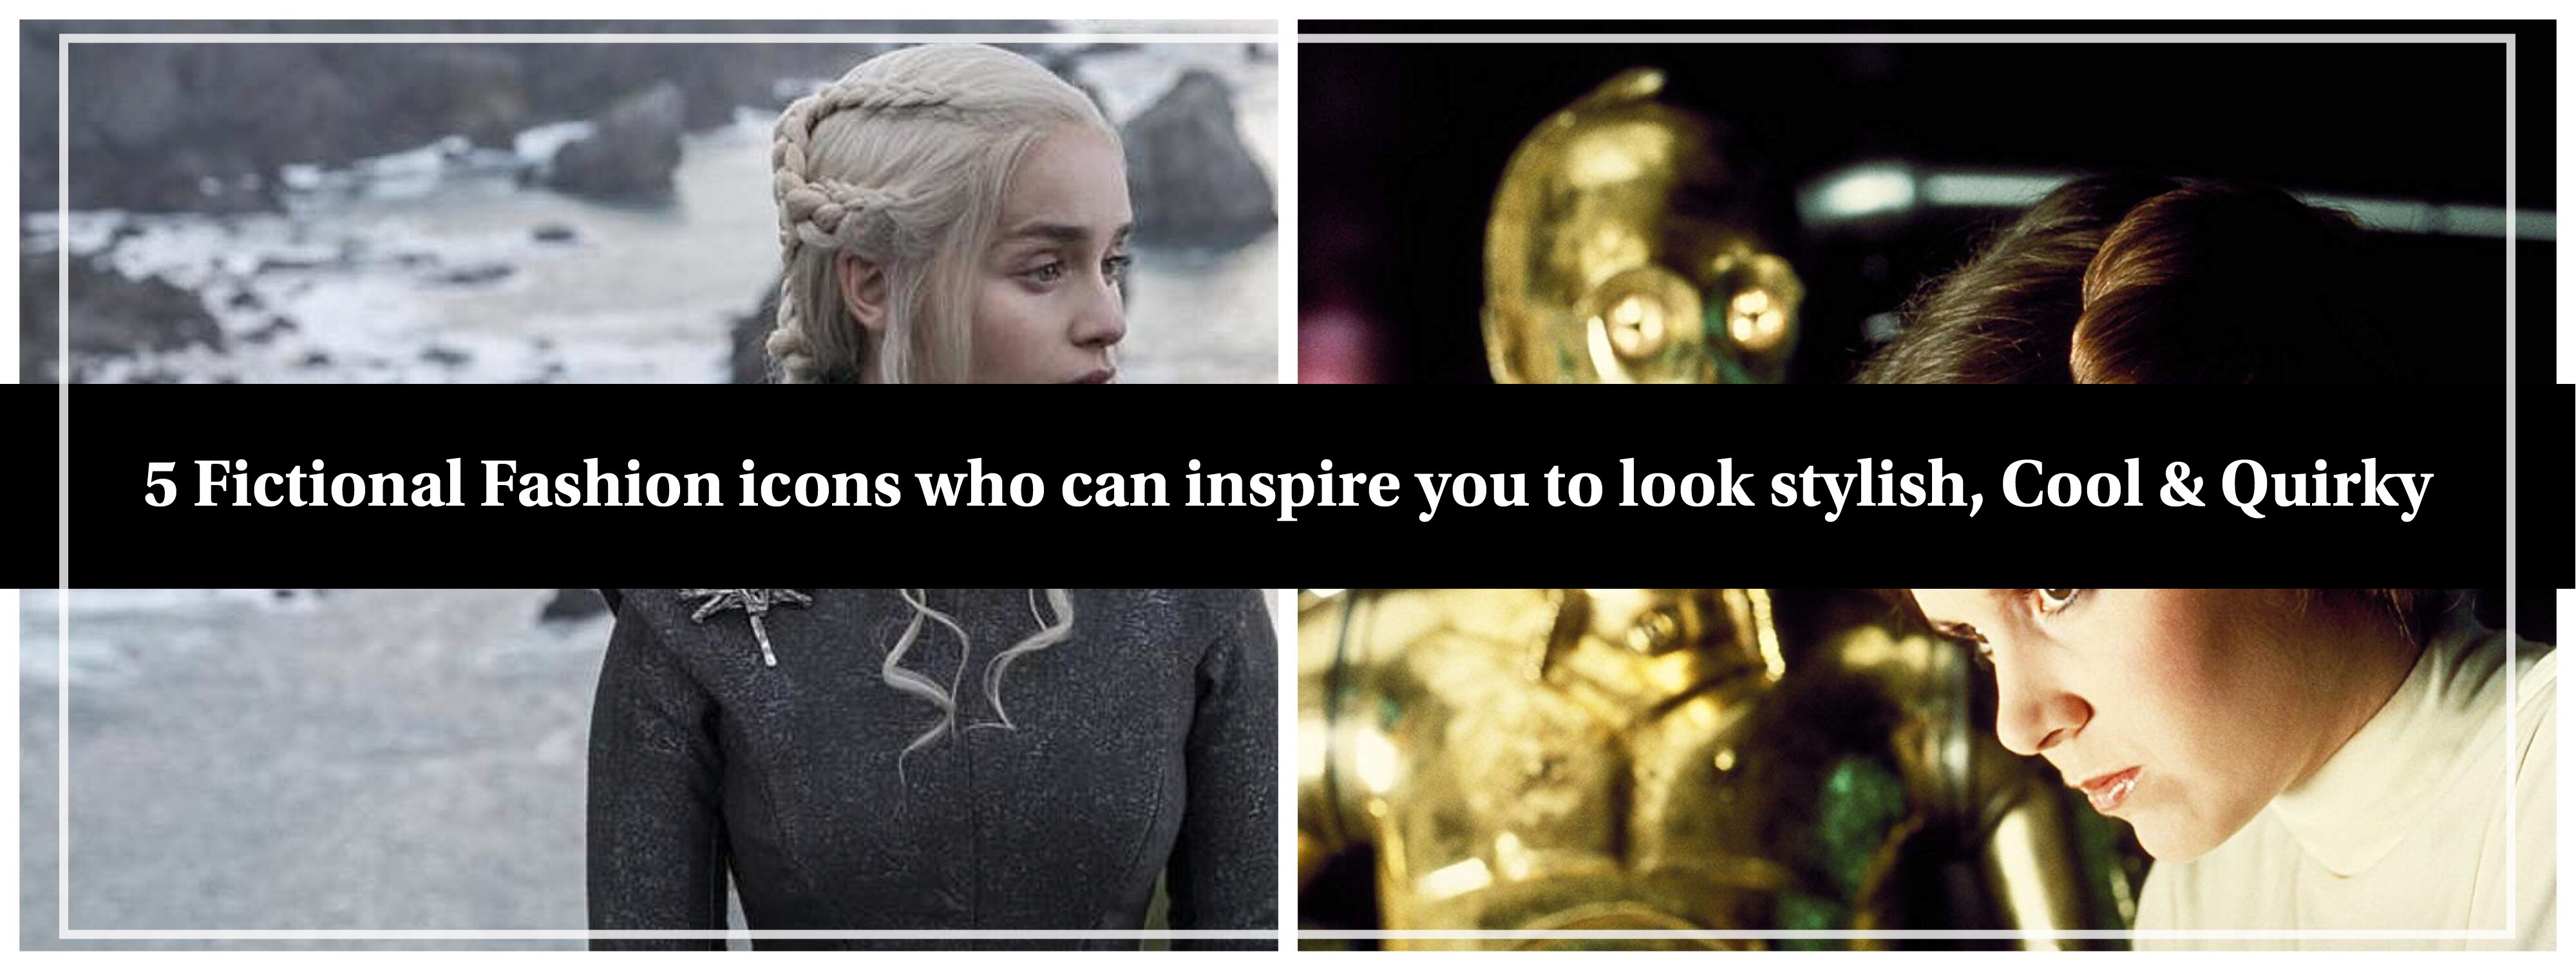 5 fictional fashion icons who can inspire you to look stylish, cool & quirky